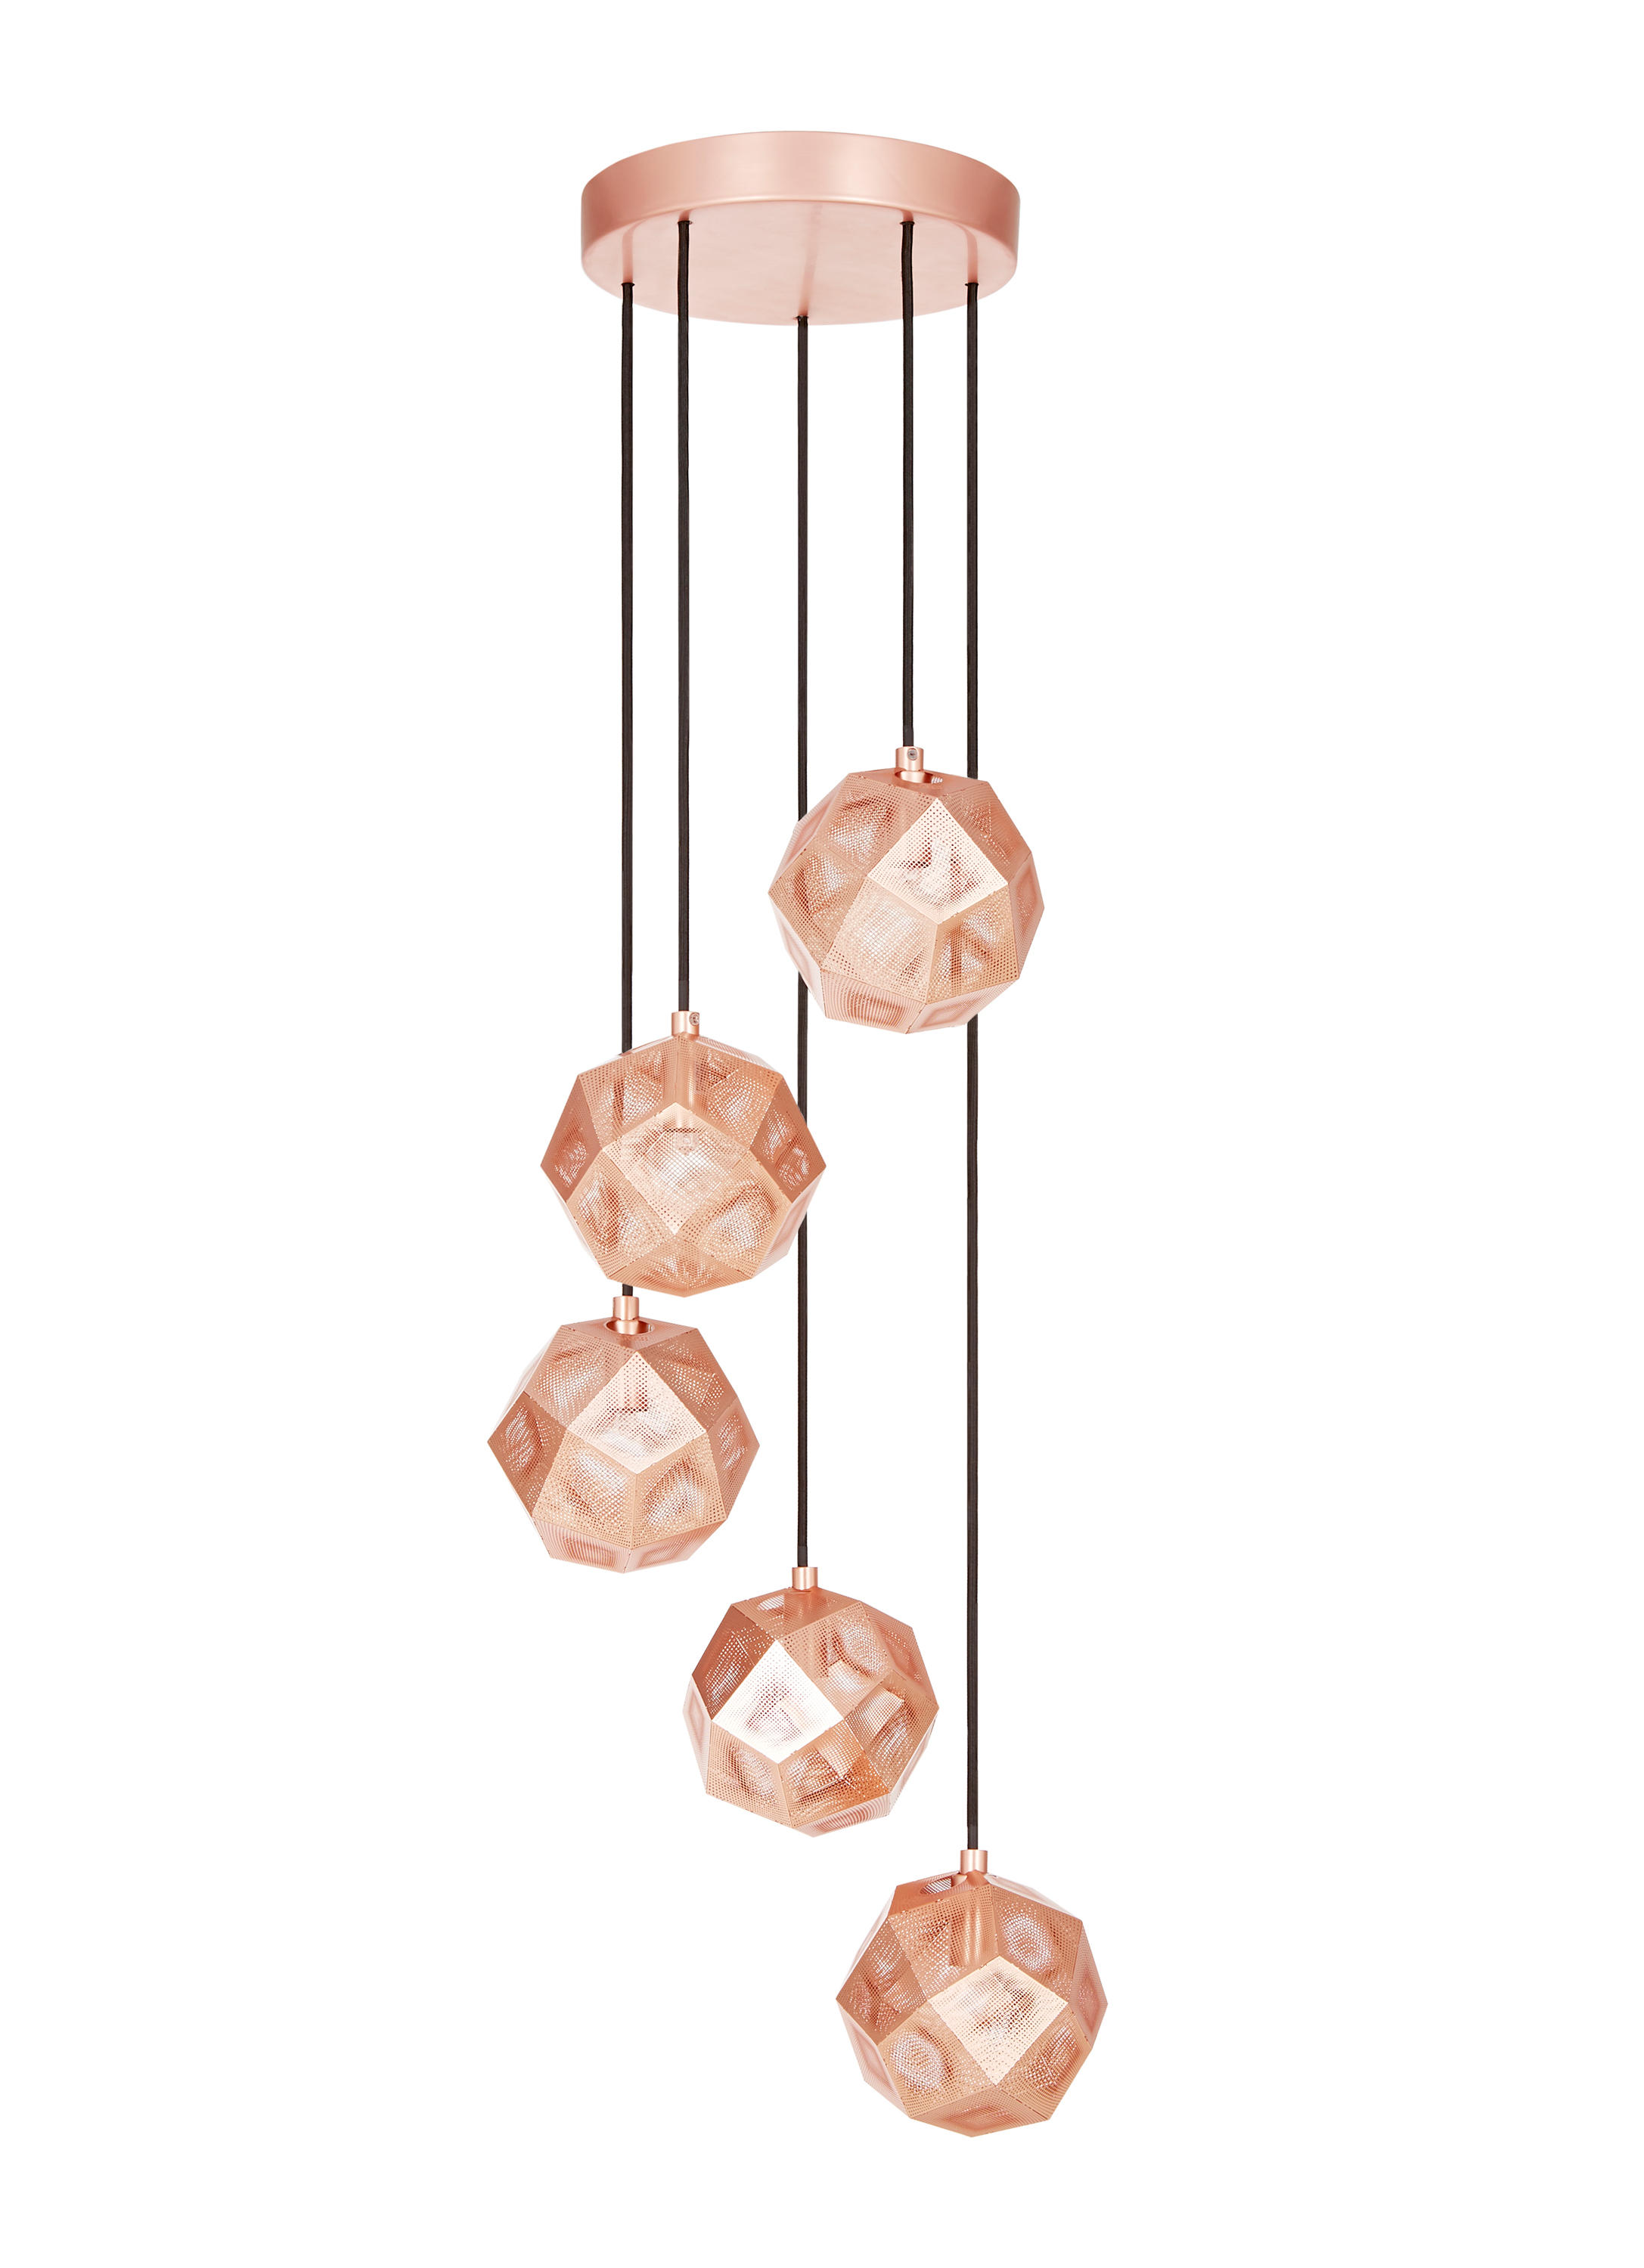 etch mini chandelier copper general lighting from tom dixon architonic. Black Bedroom Furniture Sets. Home Design Ideas